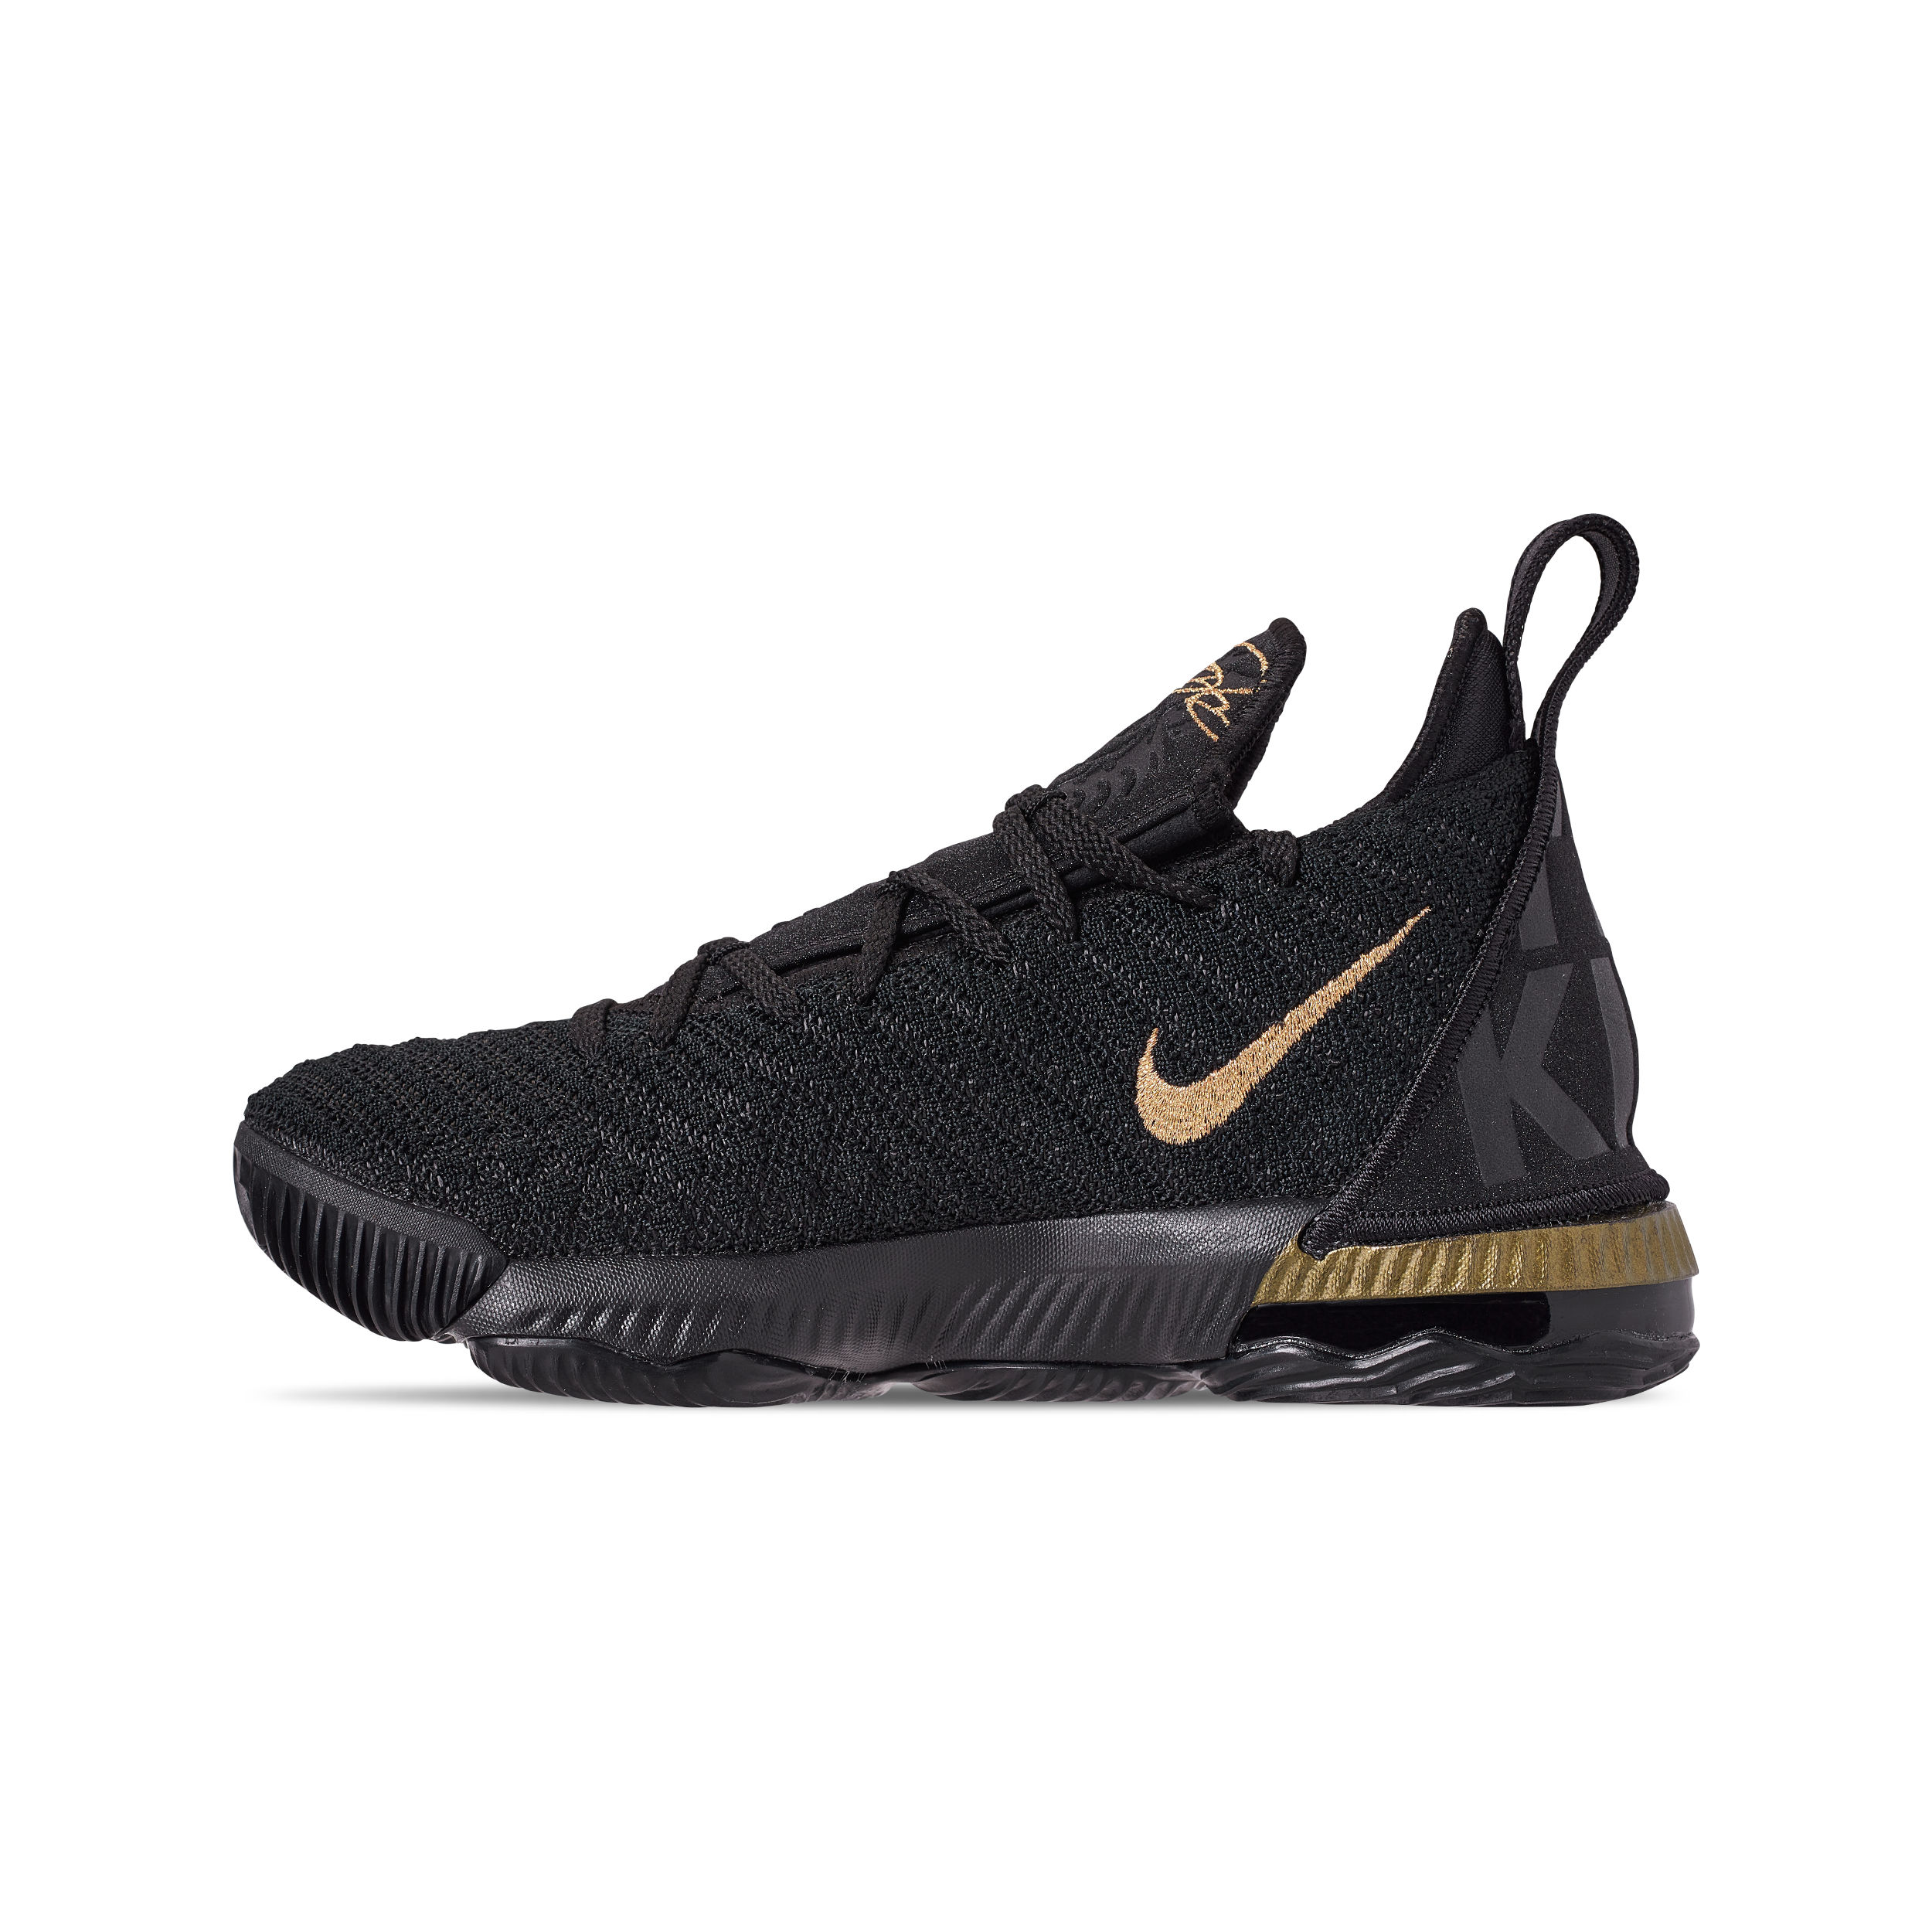 This Nike LeBron 16 Colorway is Fit For